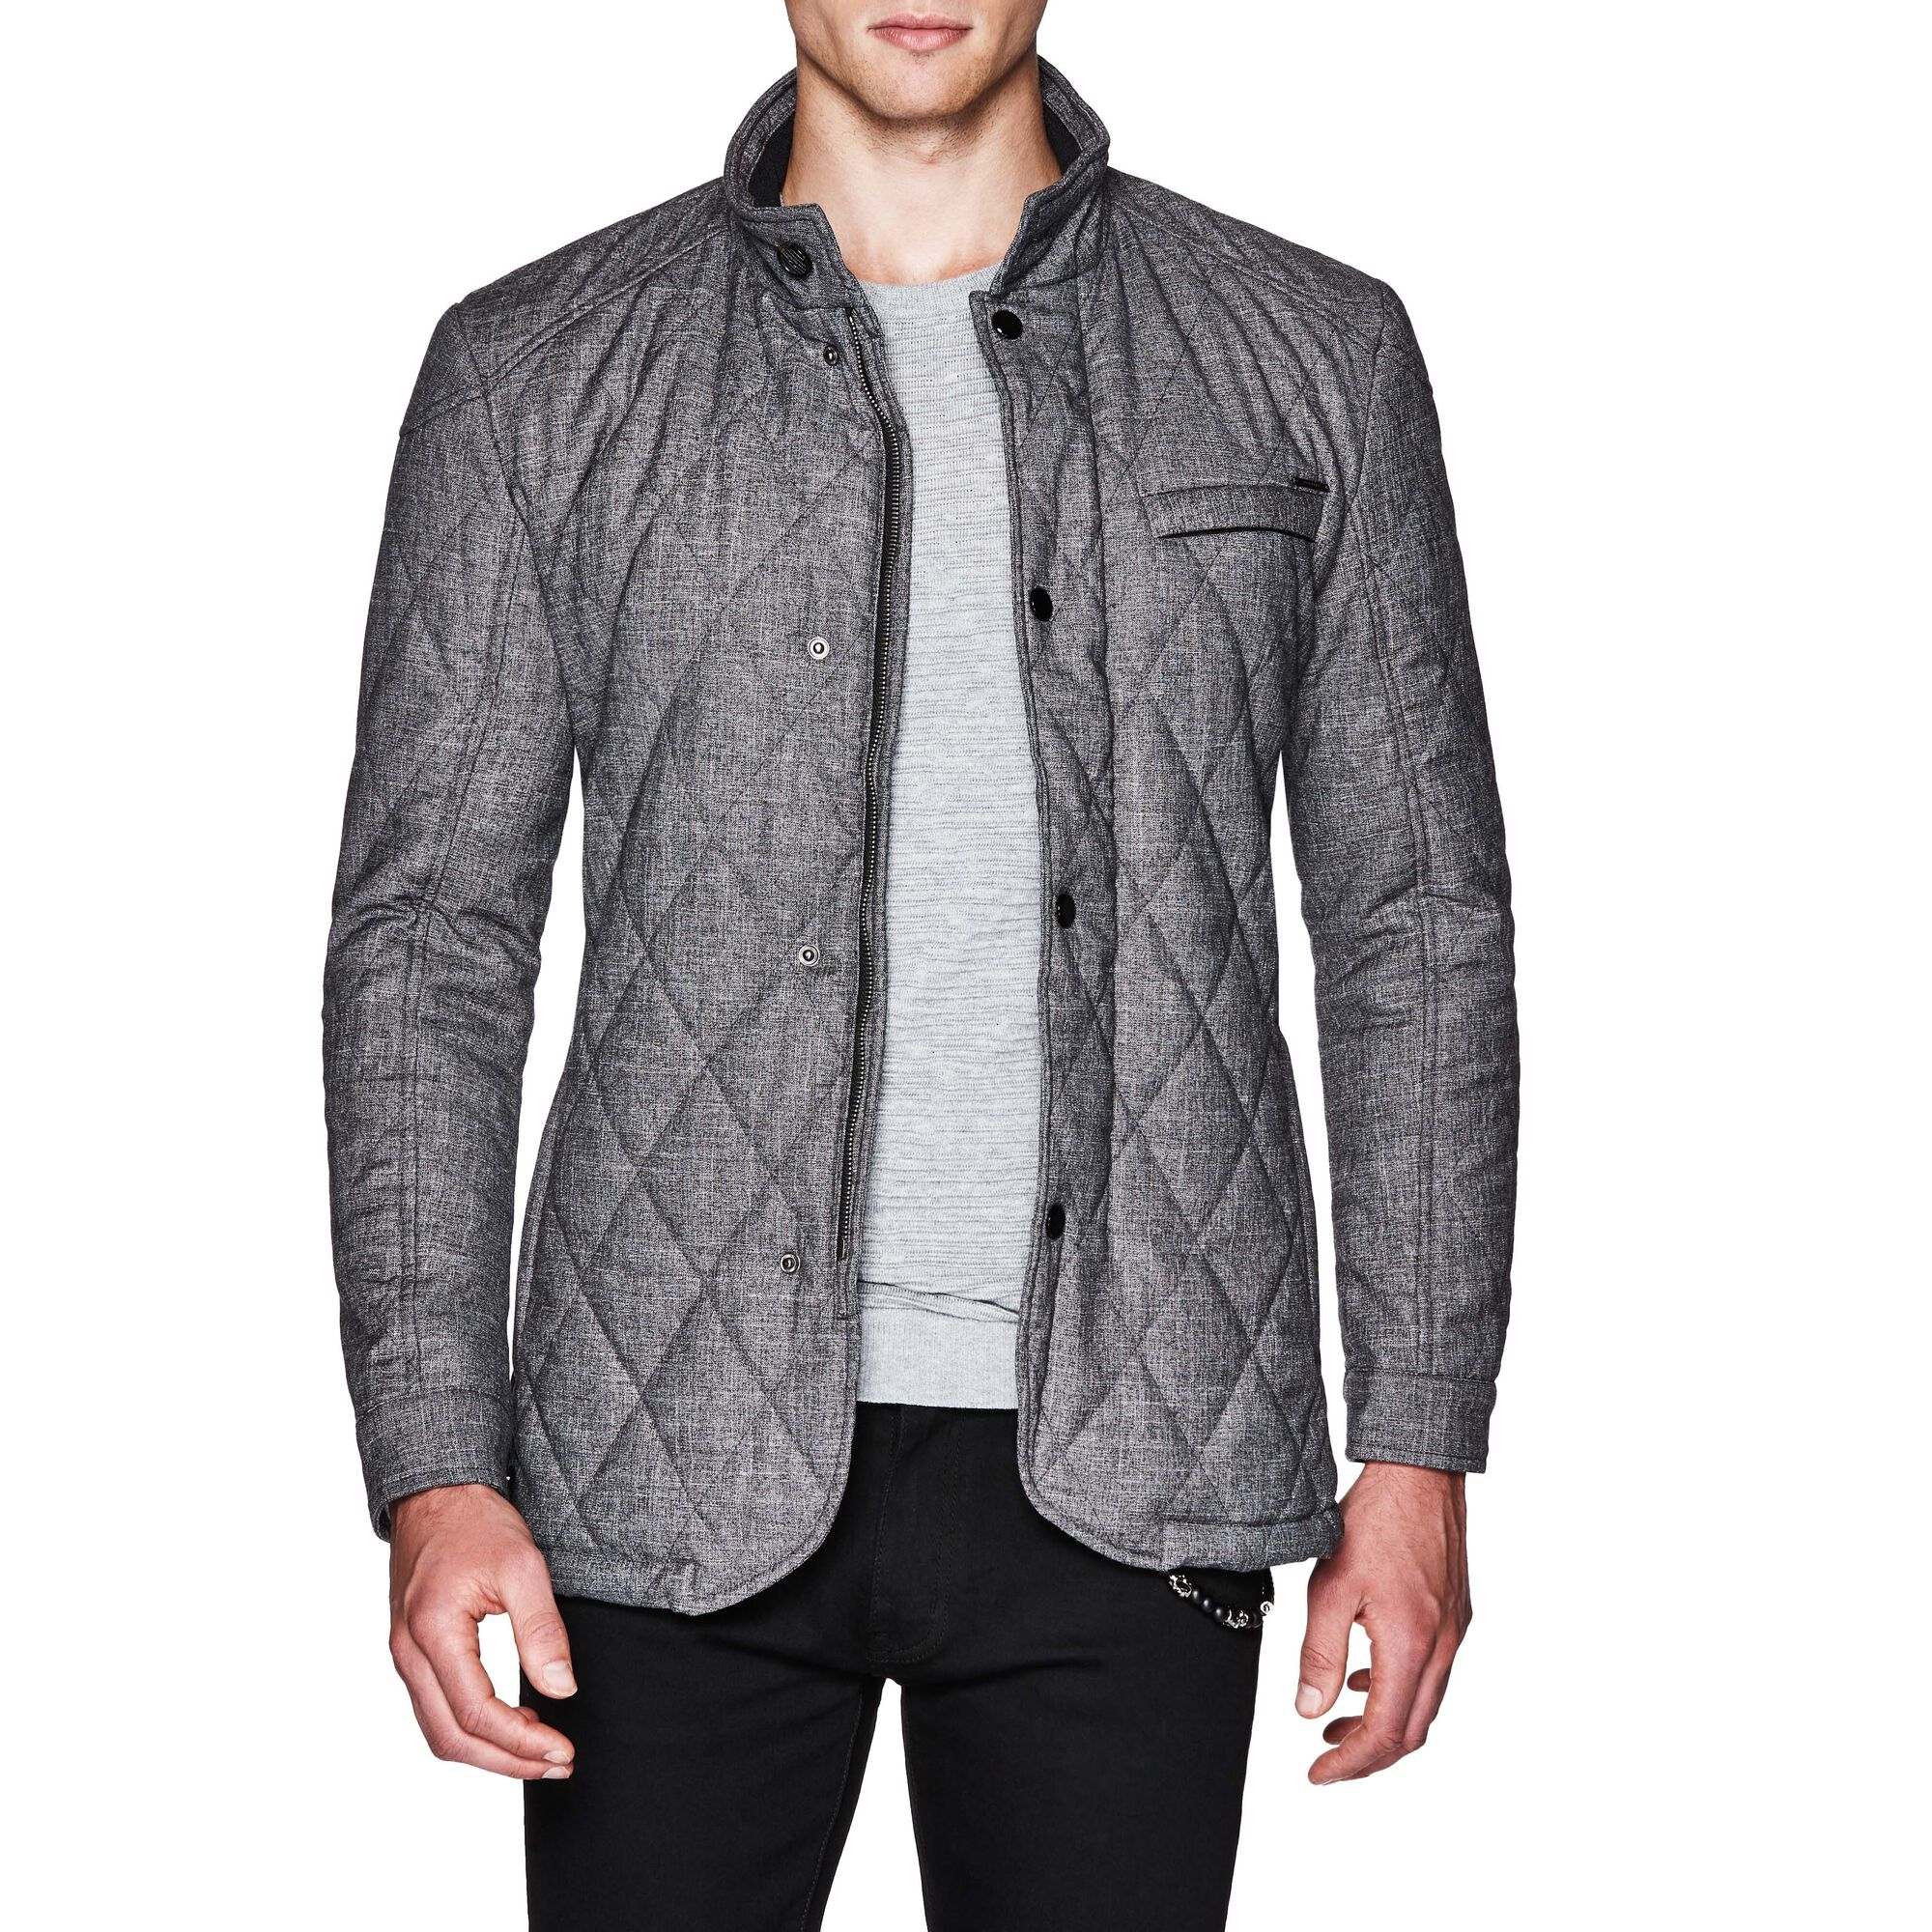 clothing quilt in light s lyst for summit shirt gray heather jacket quilted smartwool county men